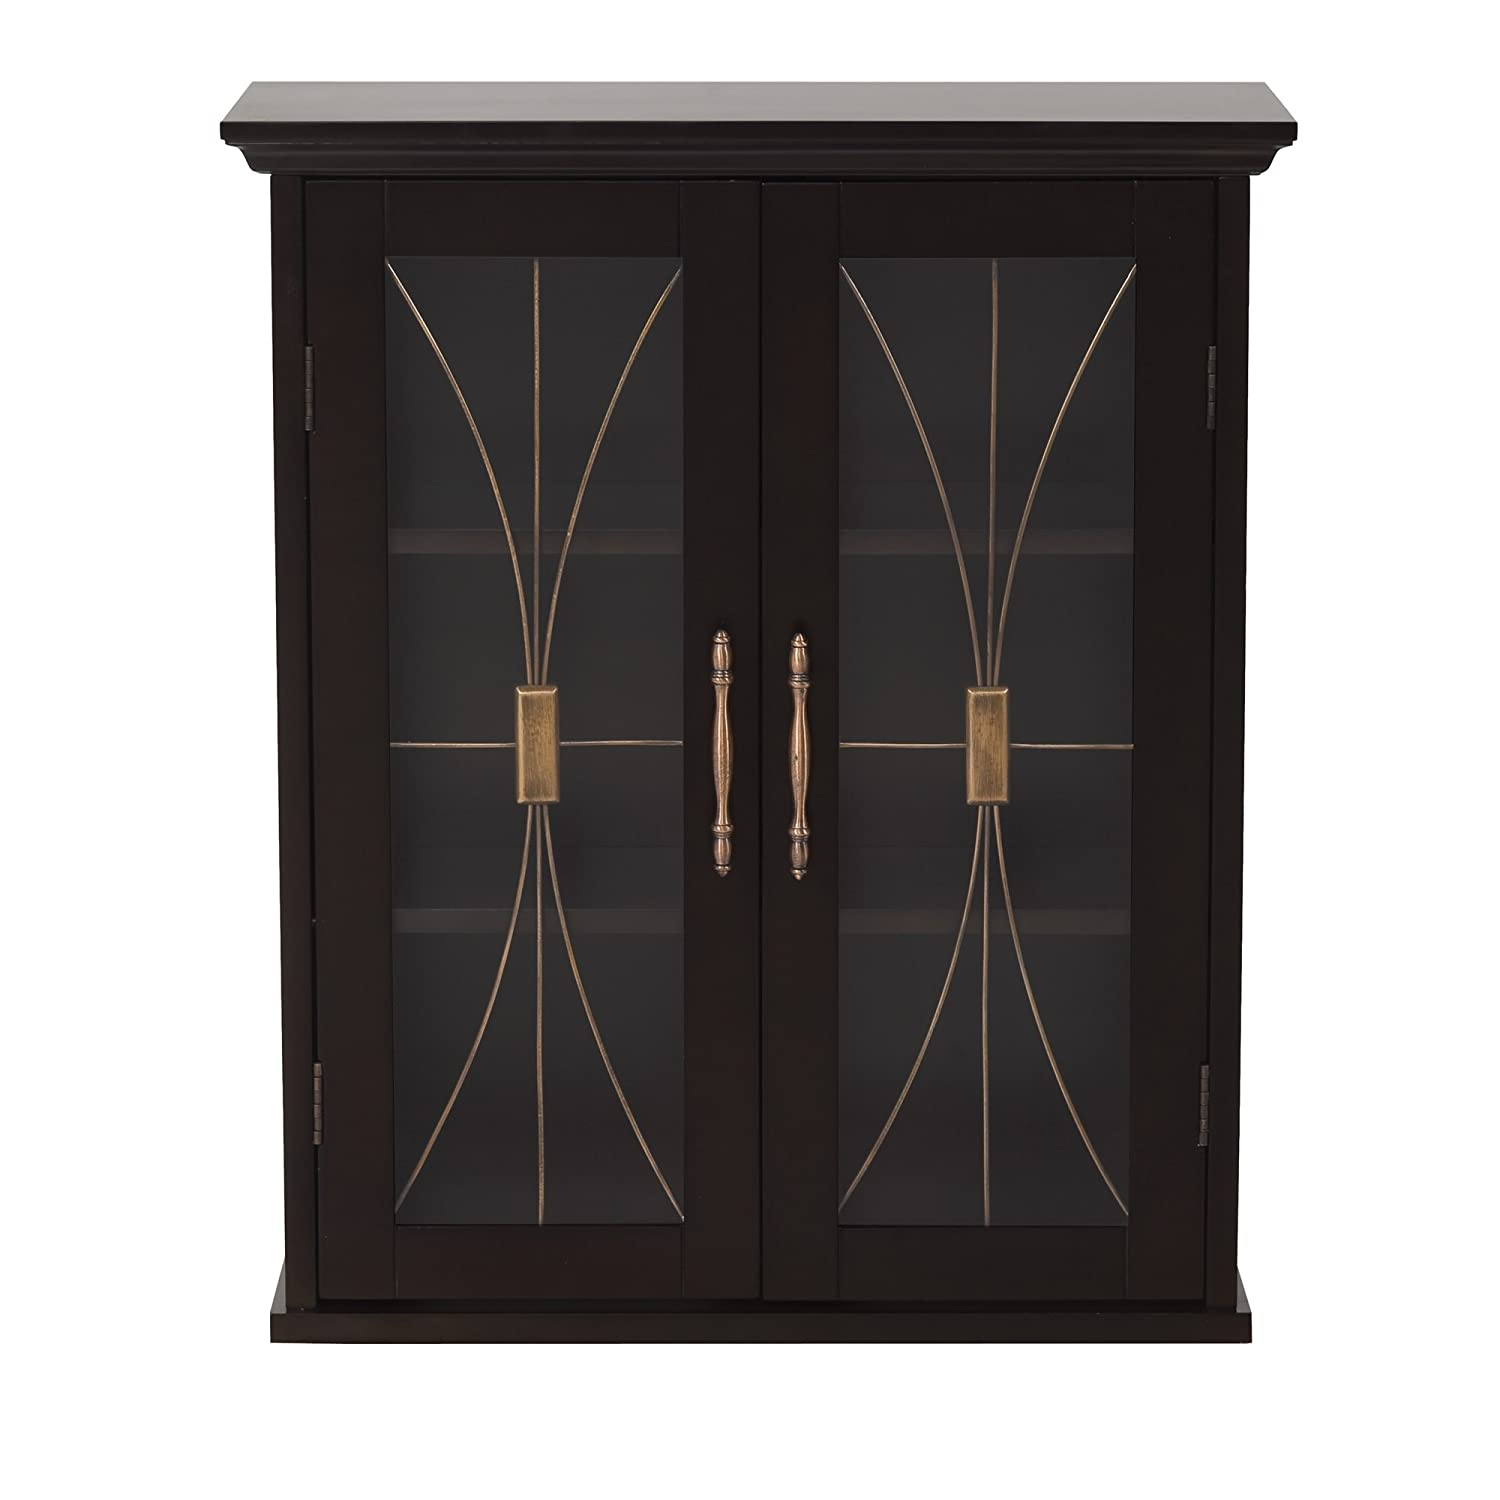 elegant-home-fashions-stanley-wall-cabinet-with-2-doors-dark-espresso